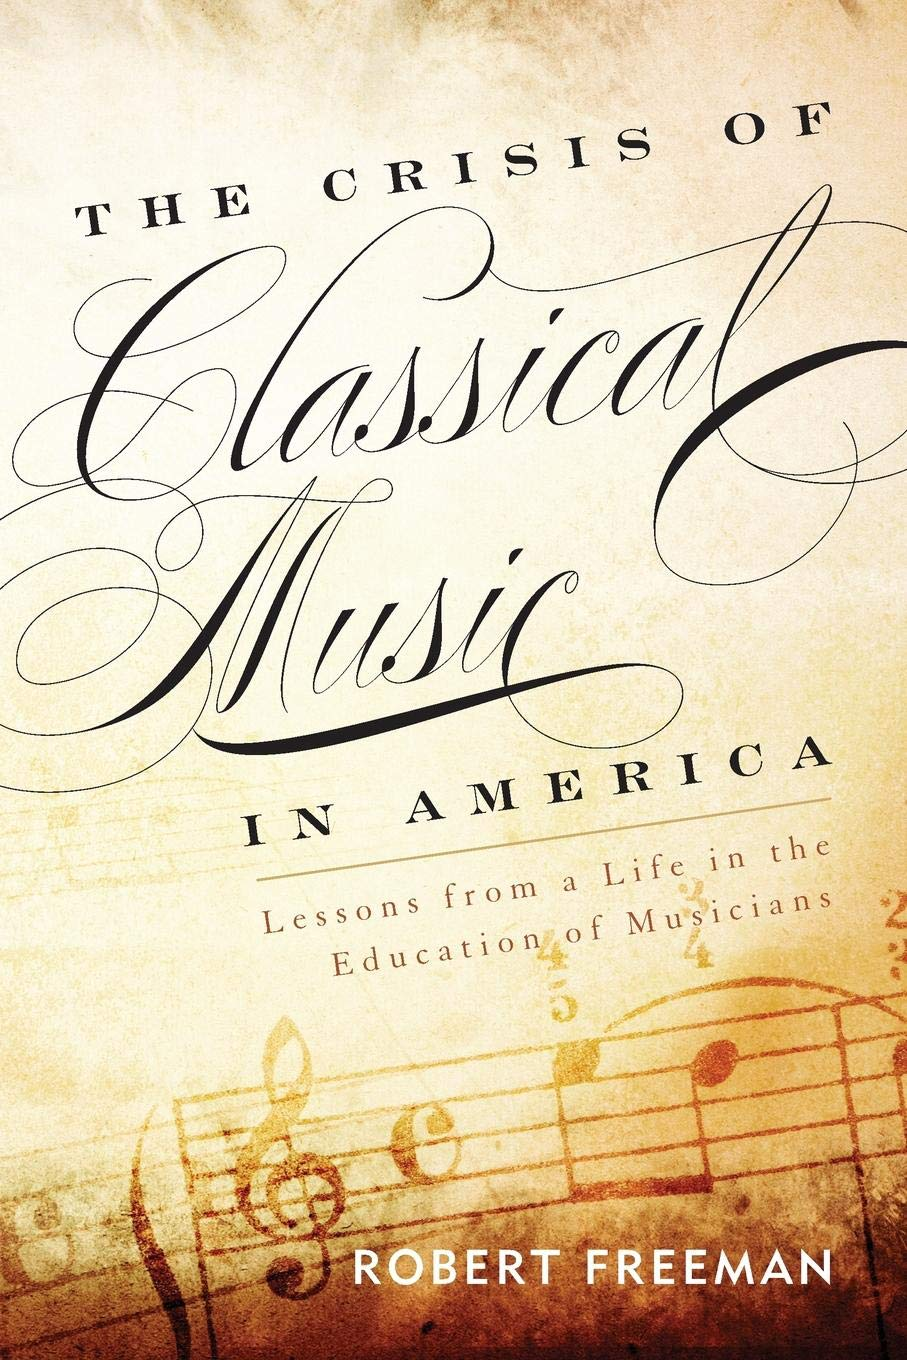 The Crisis of Classical Music in America: Lessons from a